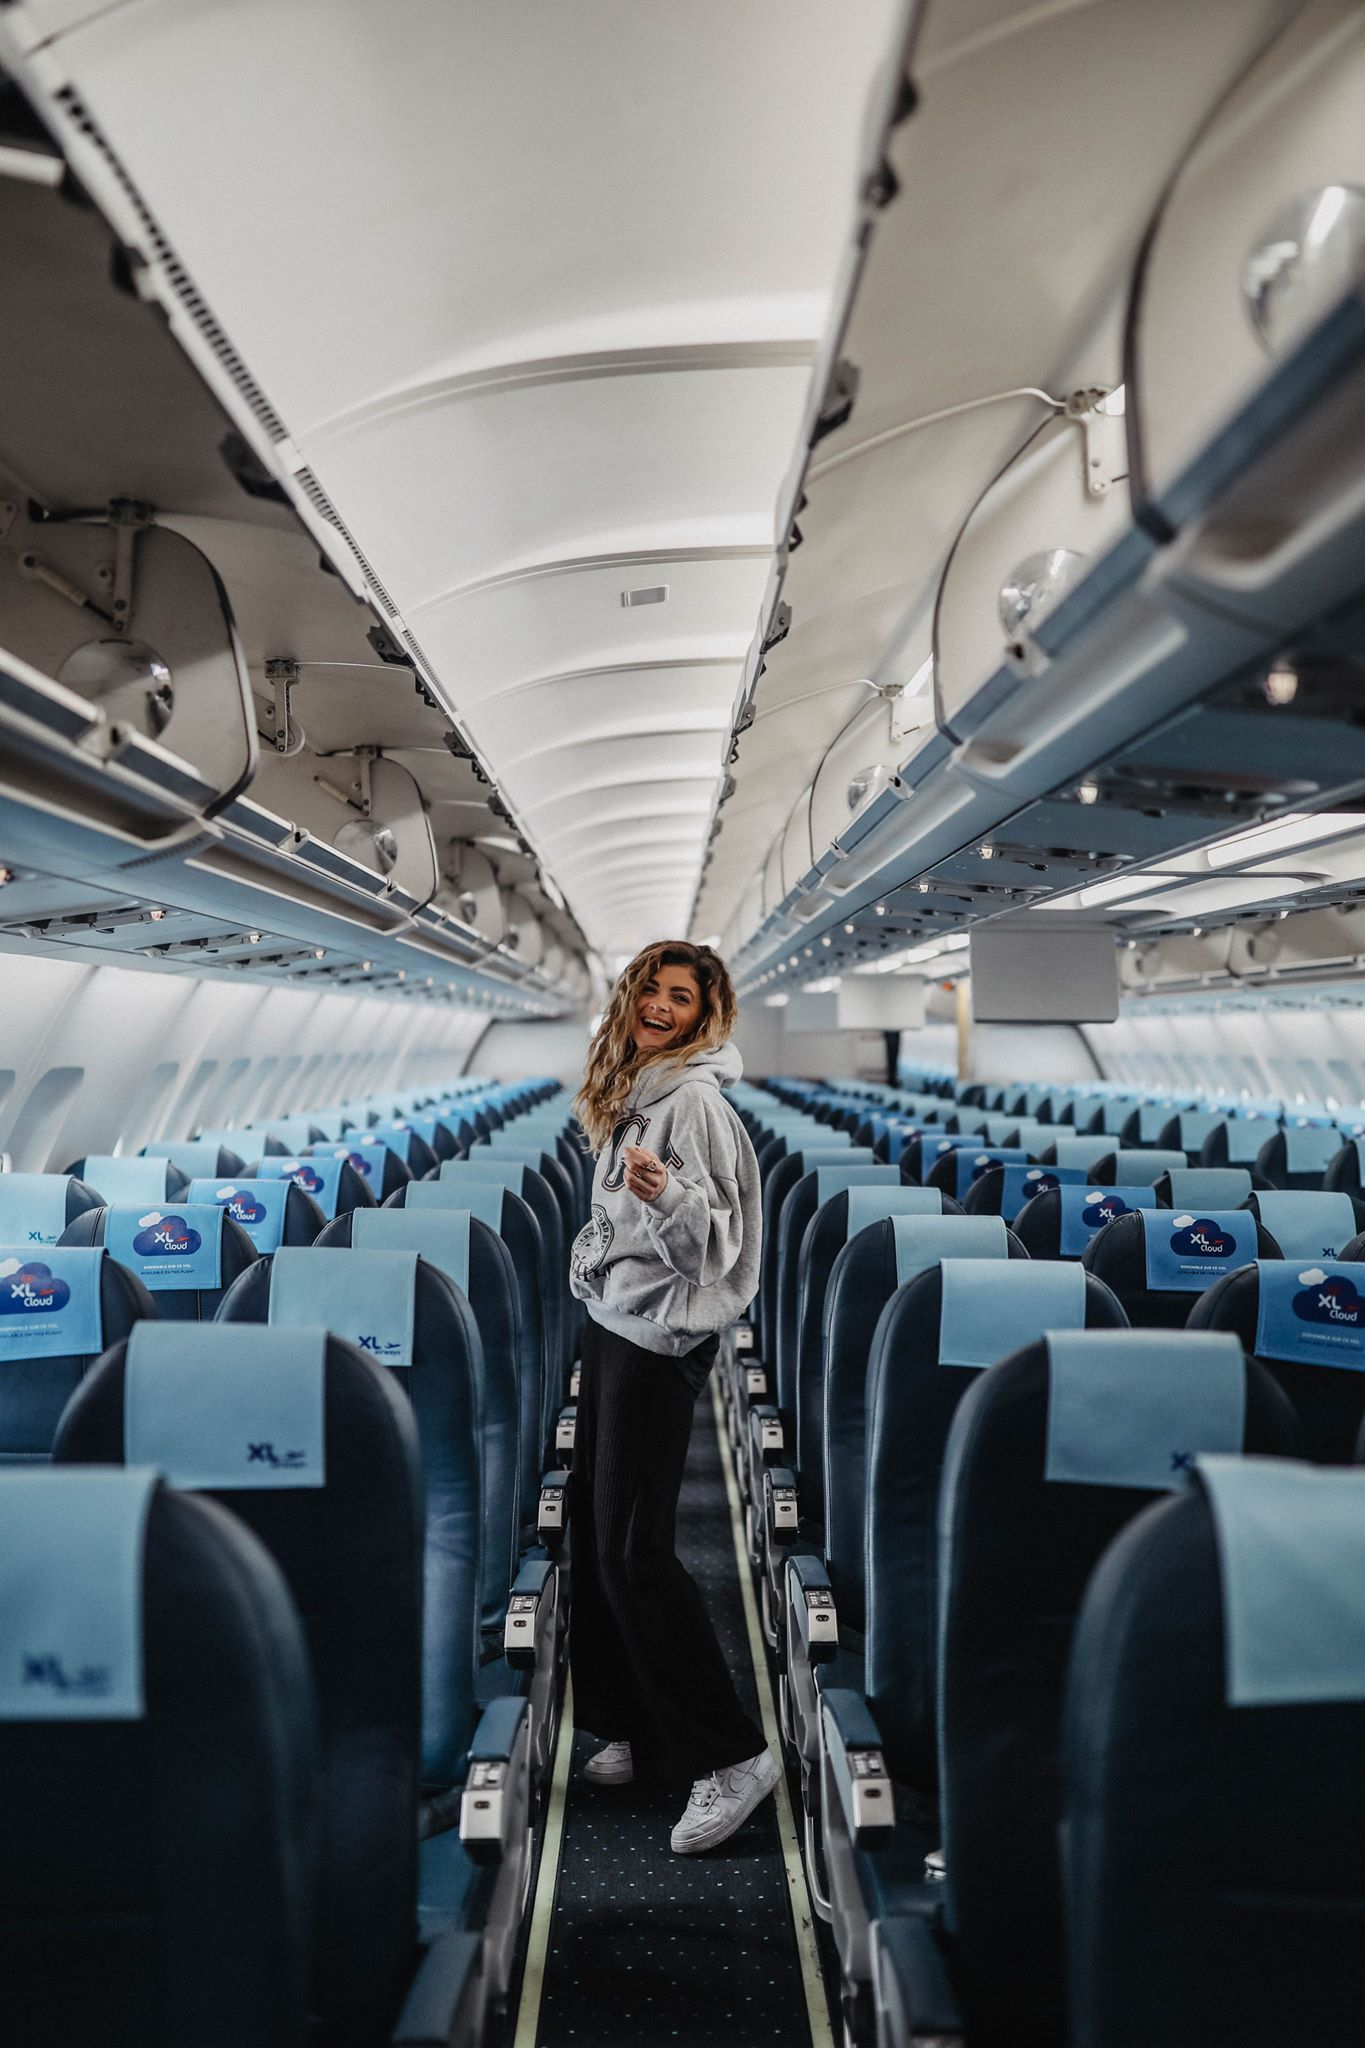 XL Airways marie and mood road trip